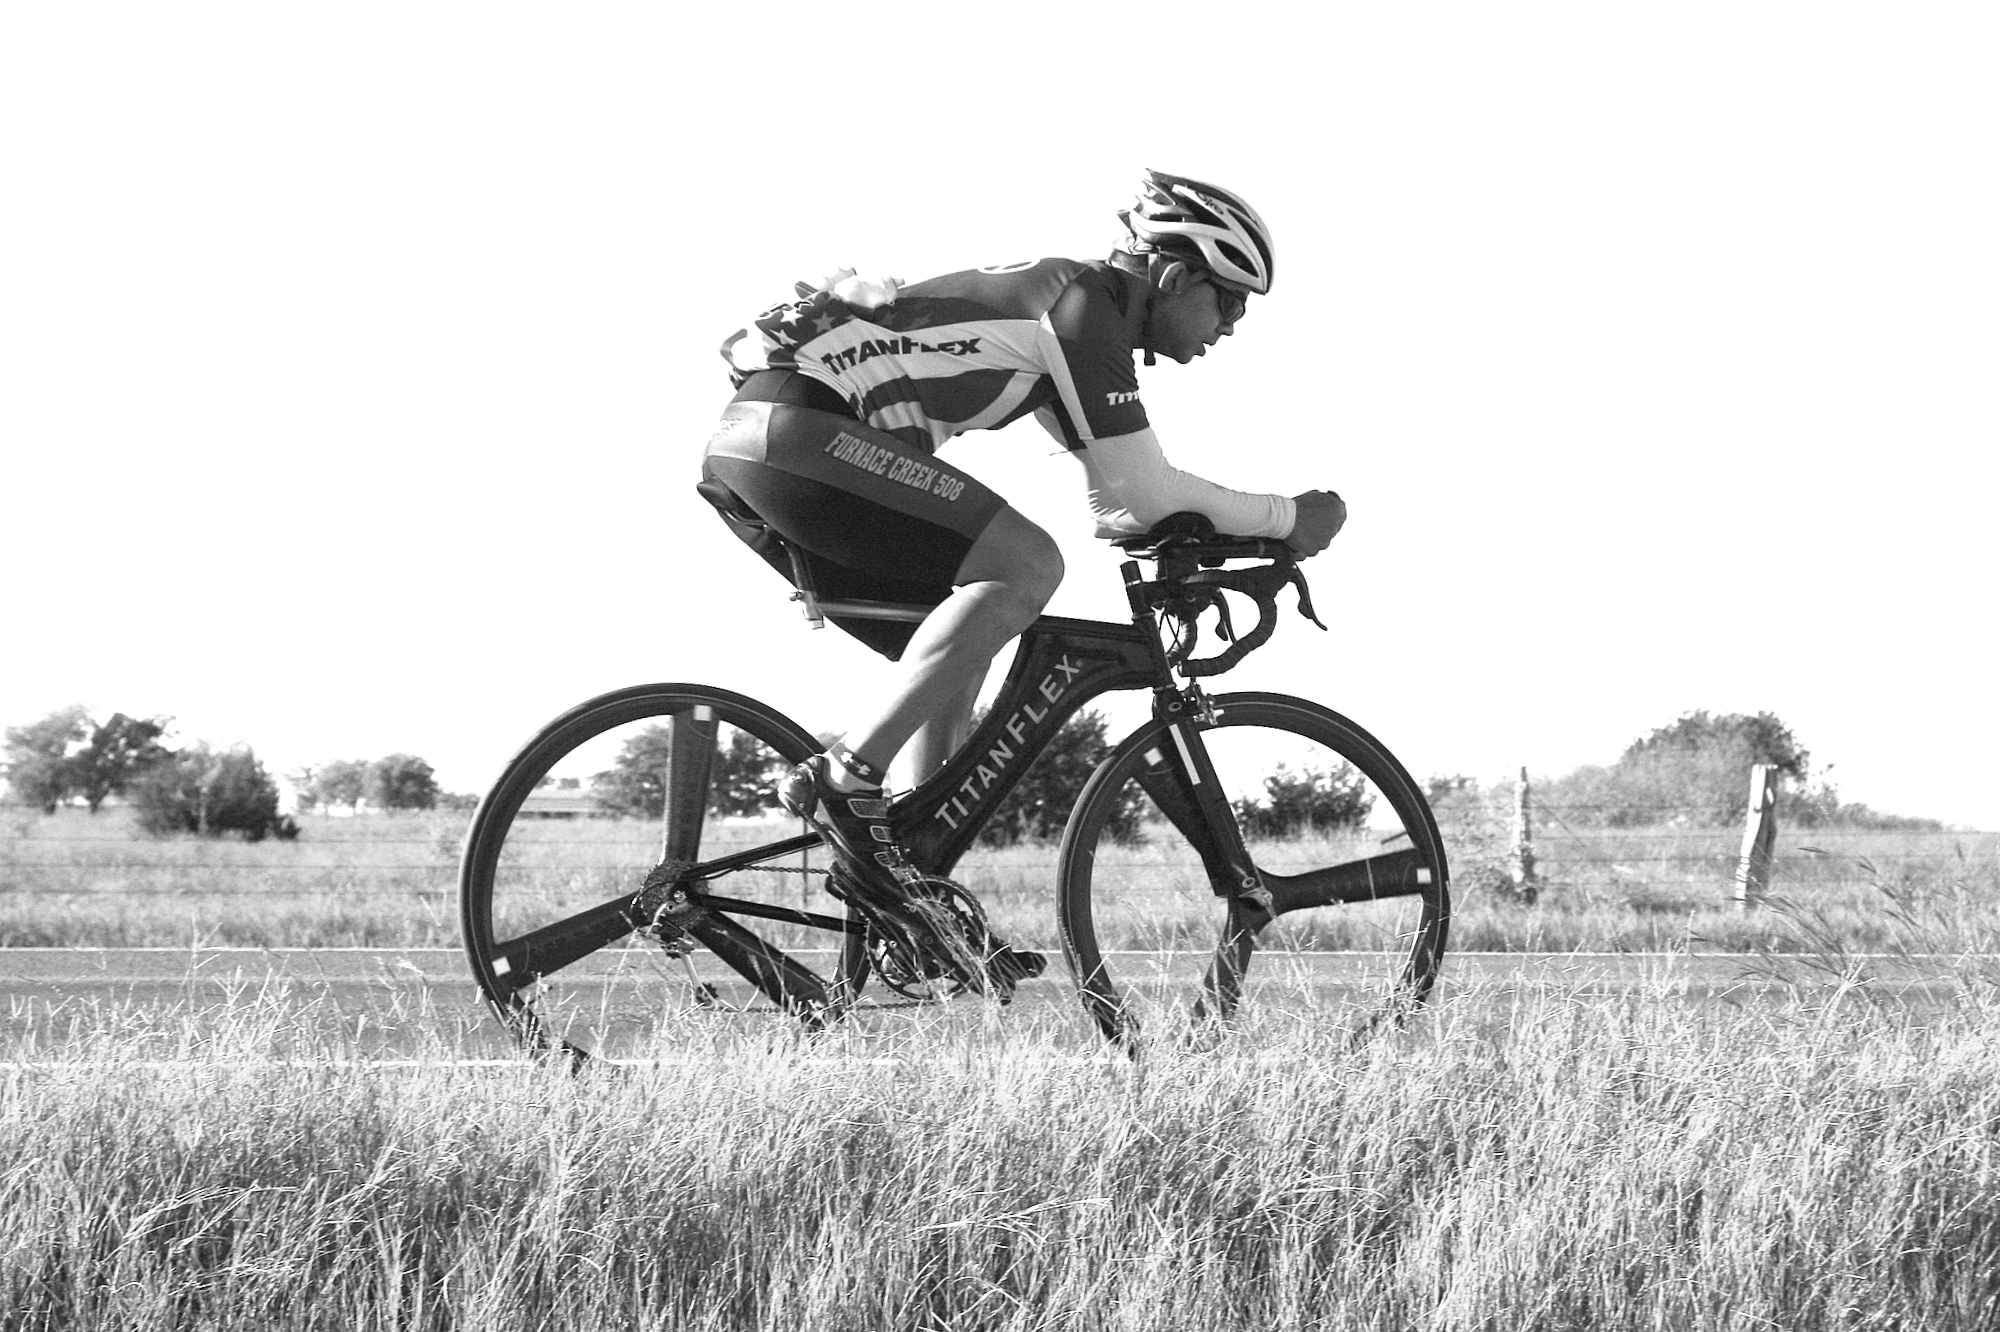 - He participated in the Texas Time Trials in 2004, 2005, 2014, and 2015.